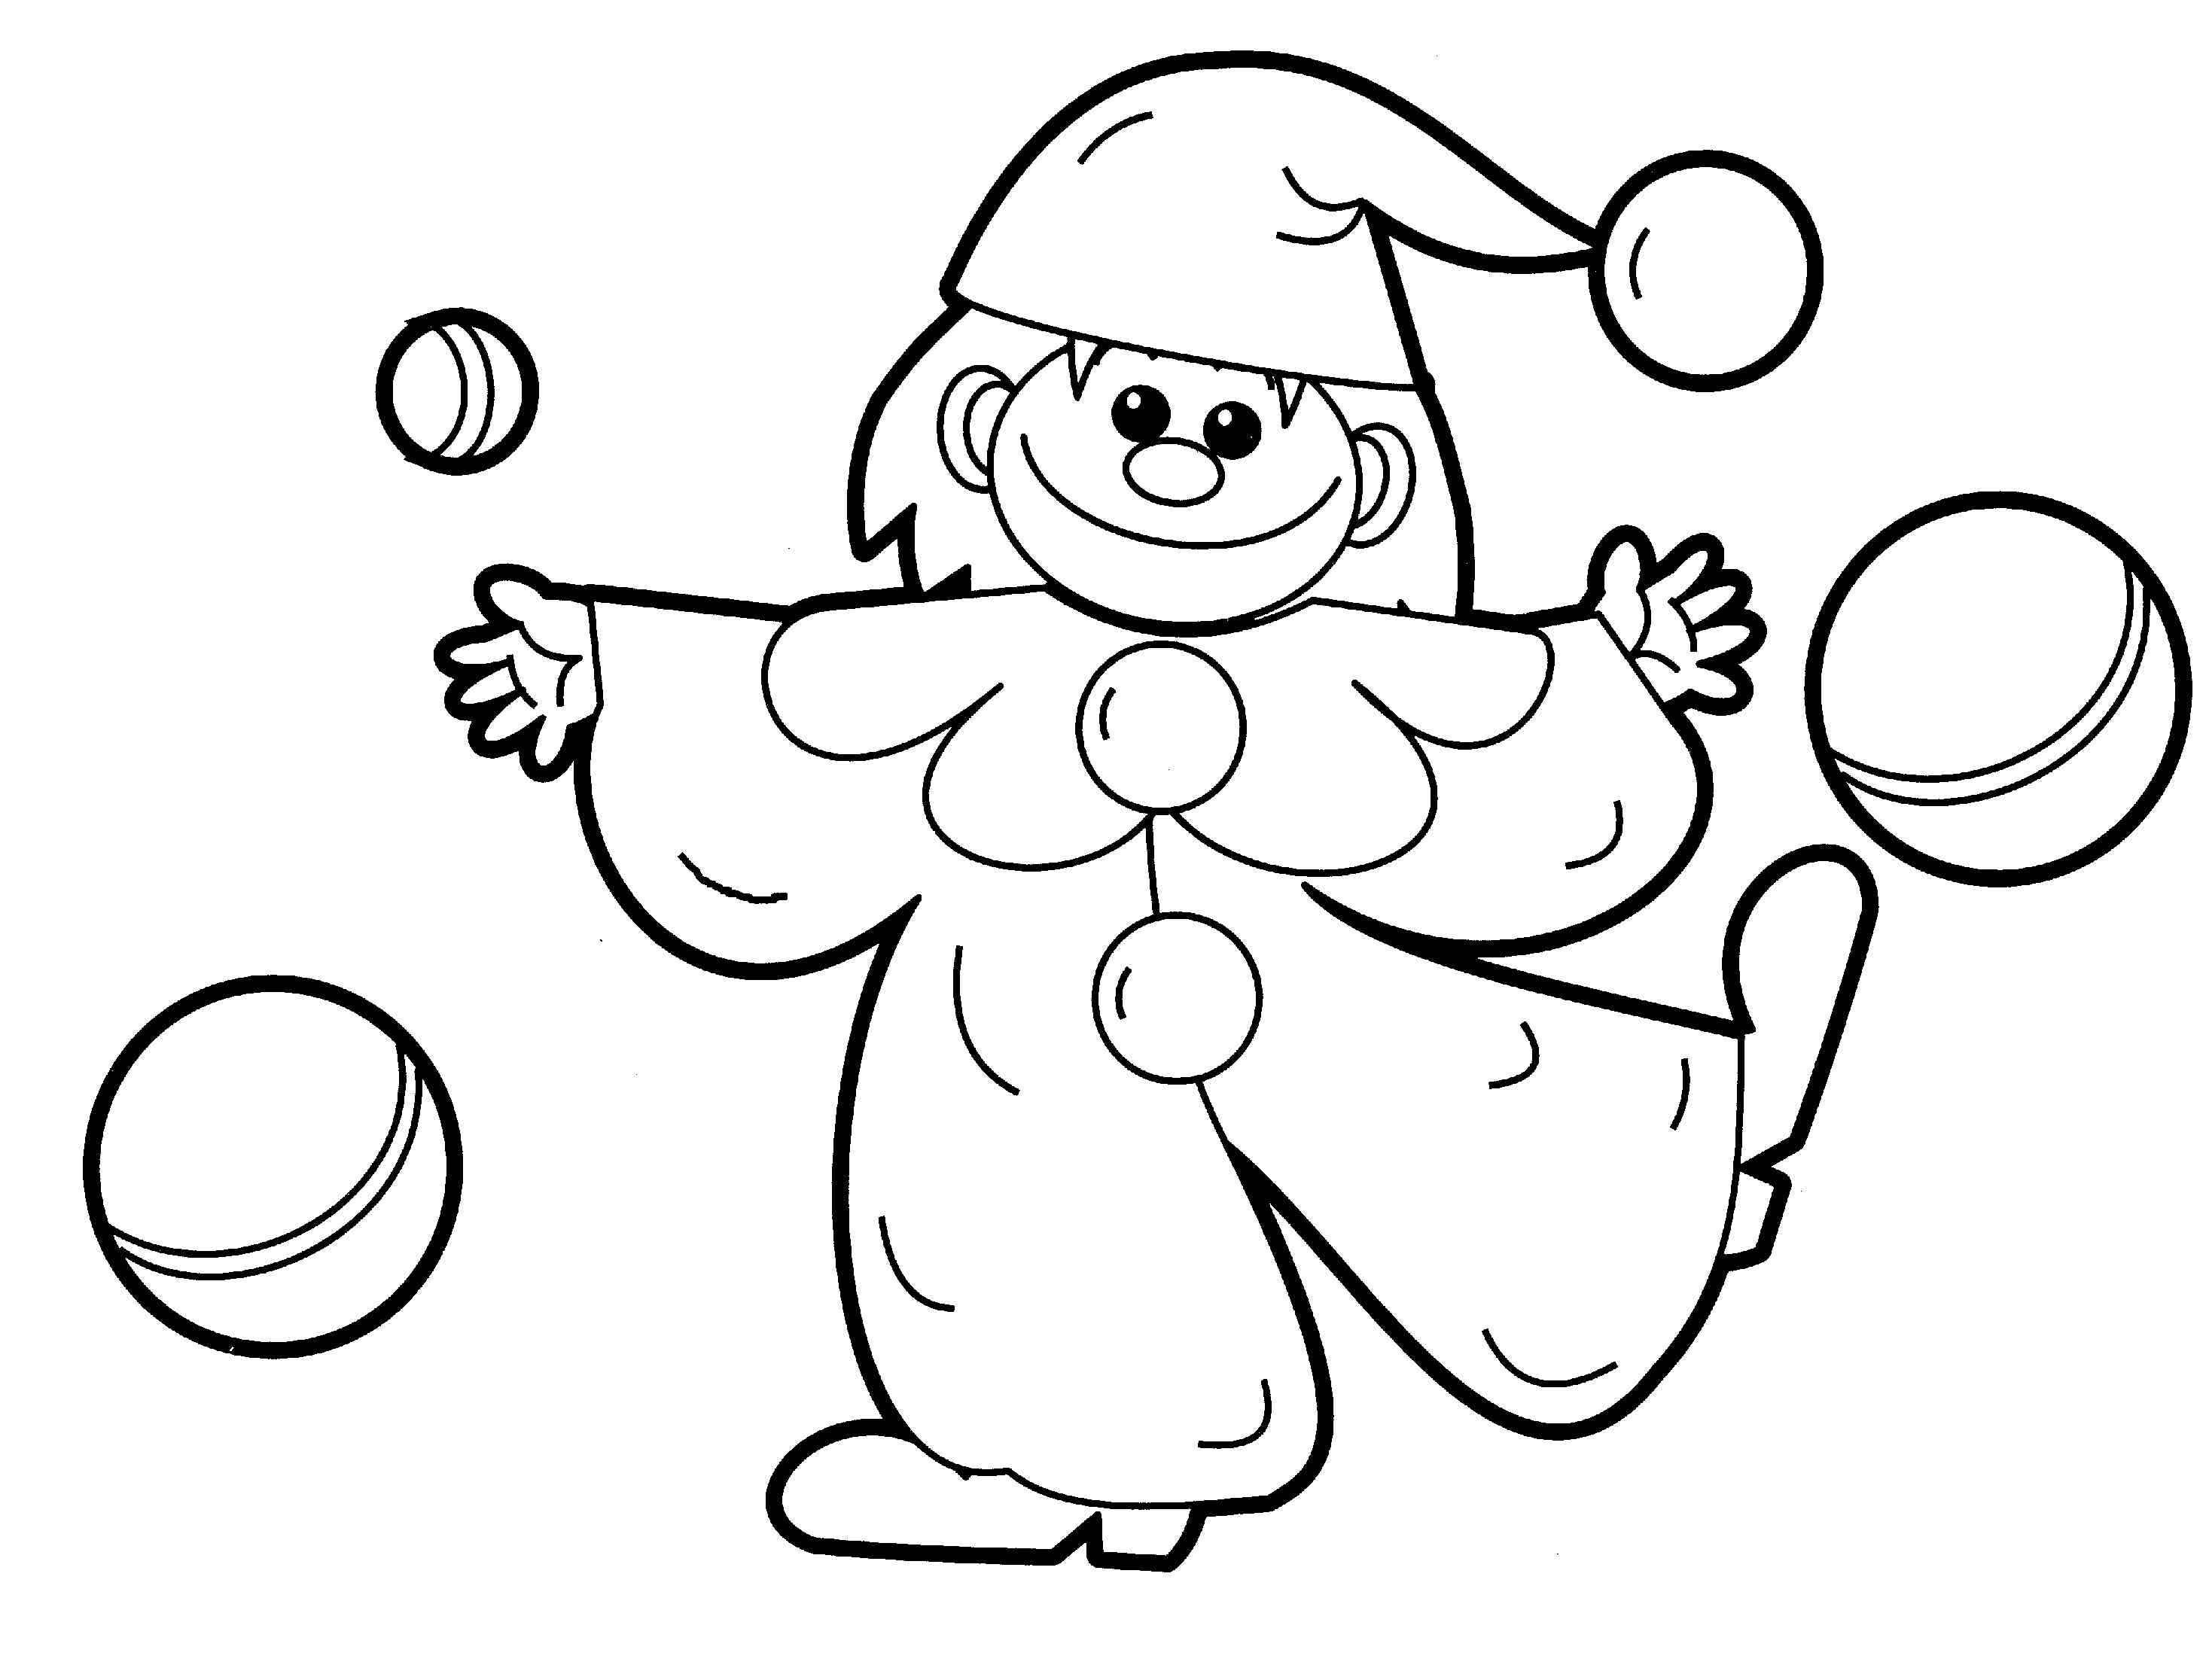 Toys coloring pages best coloring pages for kids for Fun coloring pages for kids